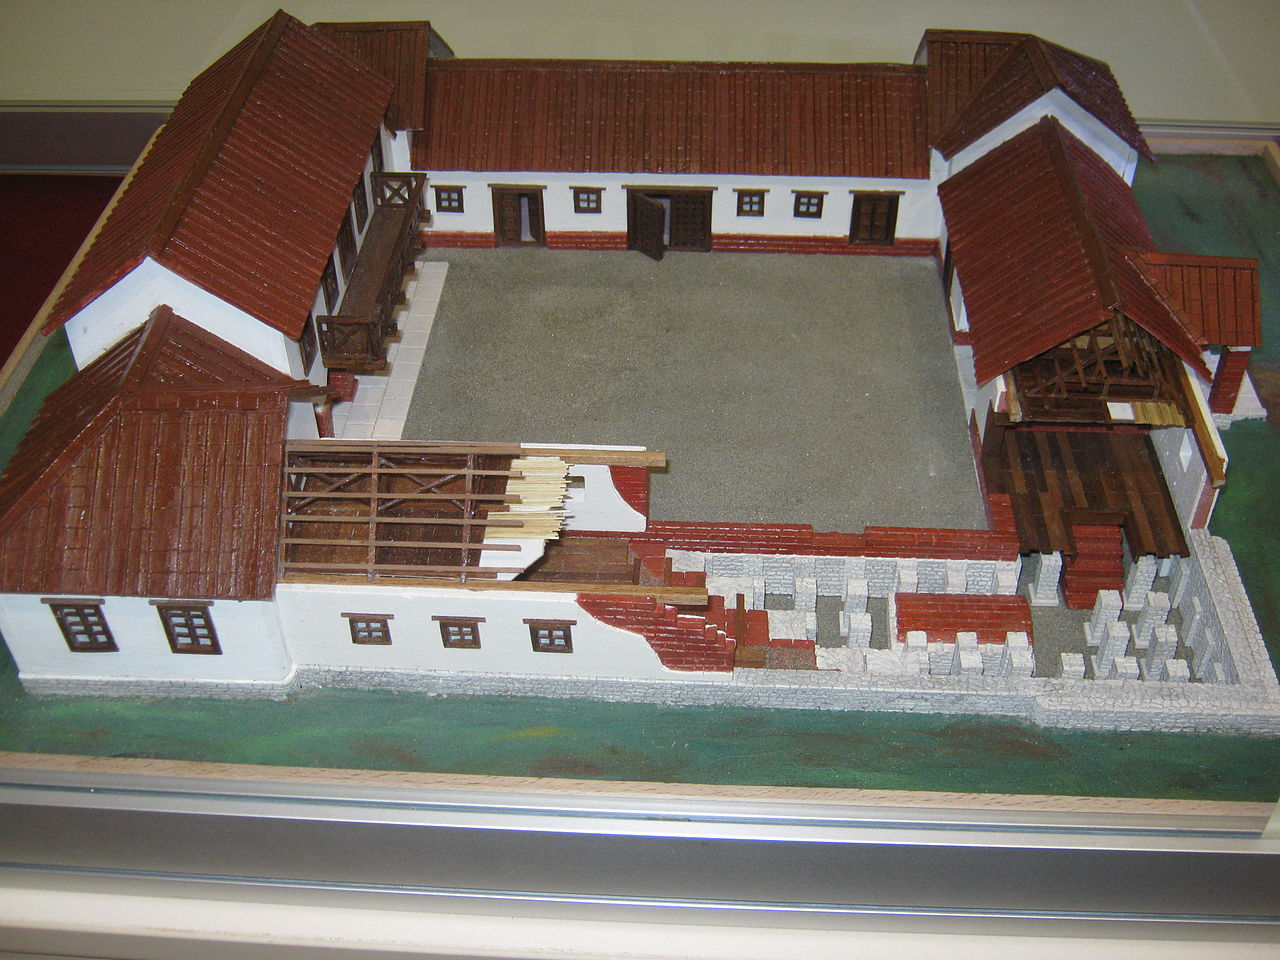 File:Roman Villa Rustica Model.jpg - Wikimedia Commons on